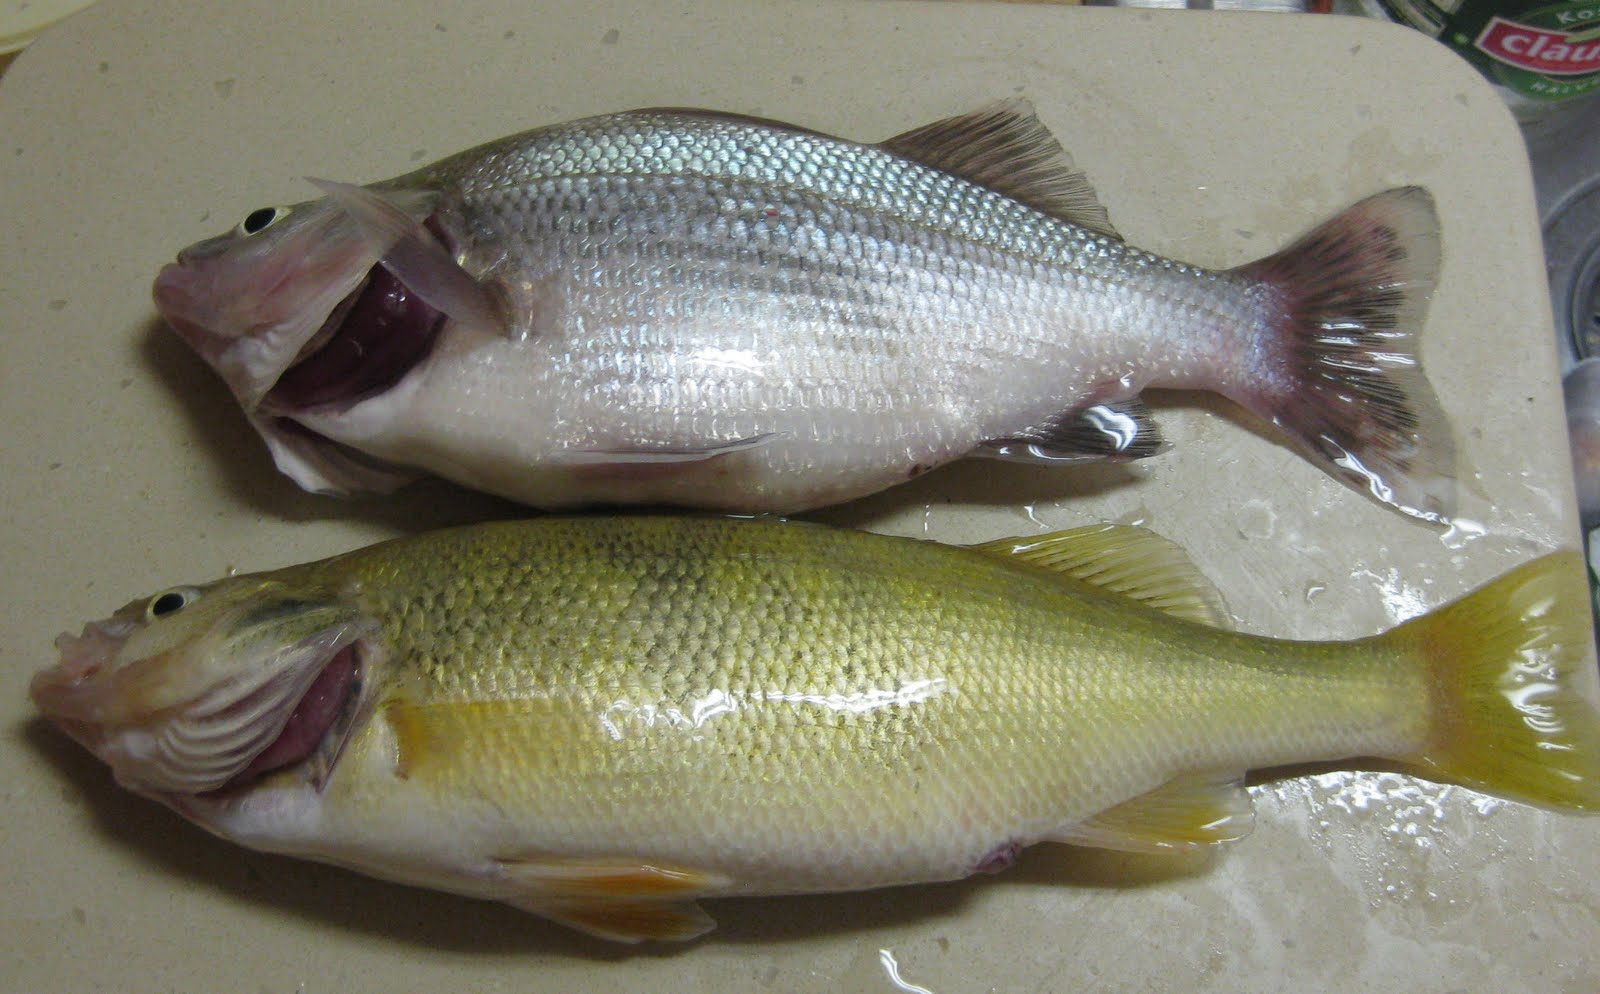 Lake erie fishing blog white perch or yellow perch the for Perch fish facts